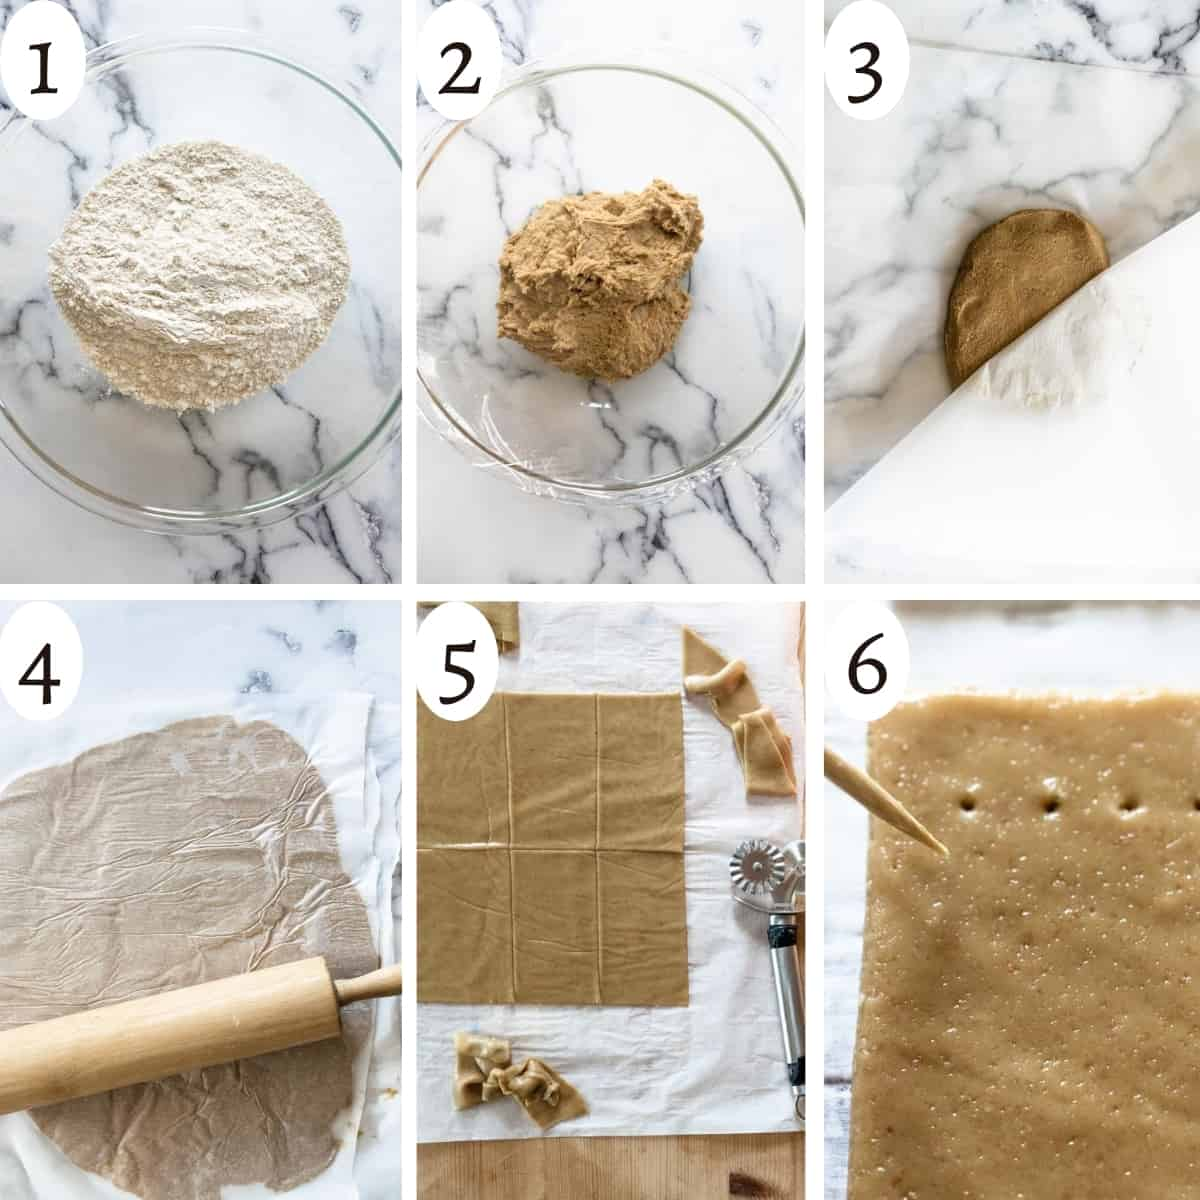 six step visual instruction grid showing how to make graham cracker dough and shape